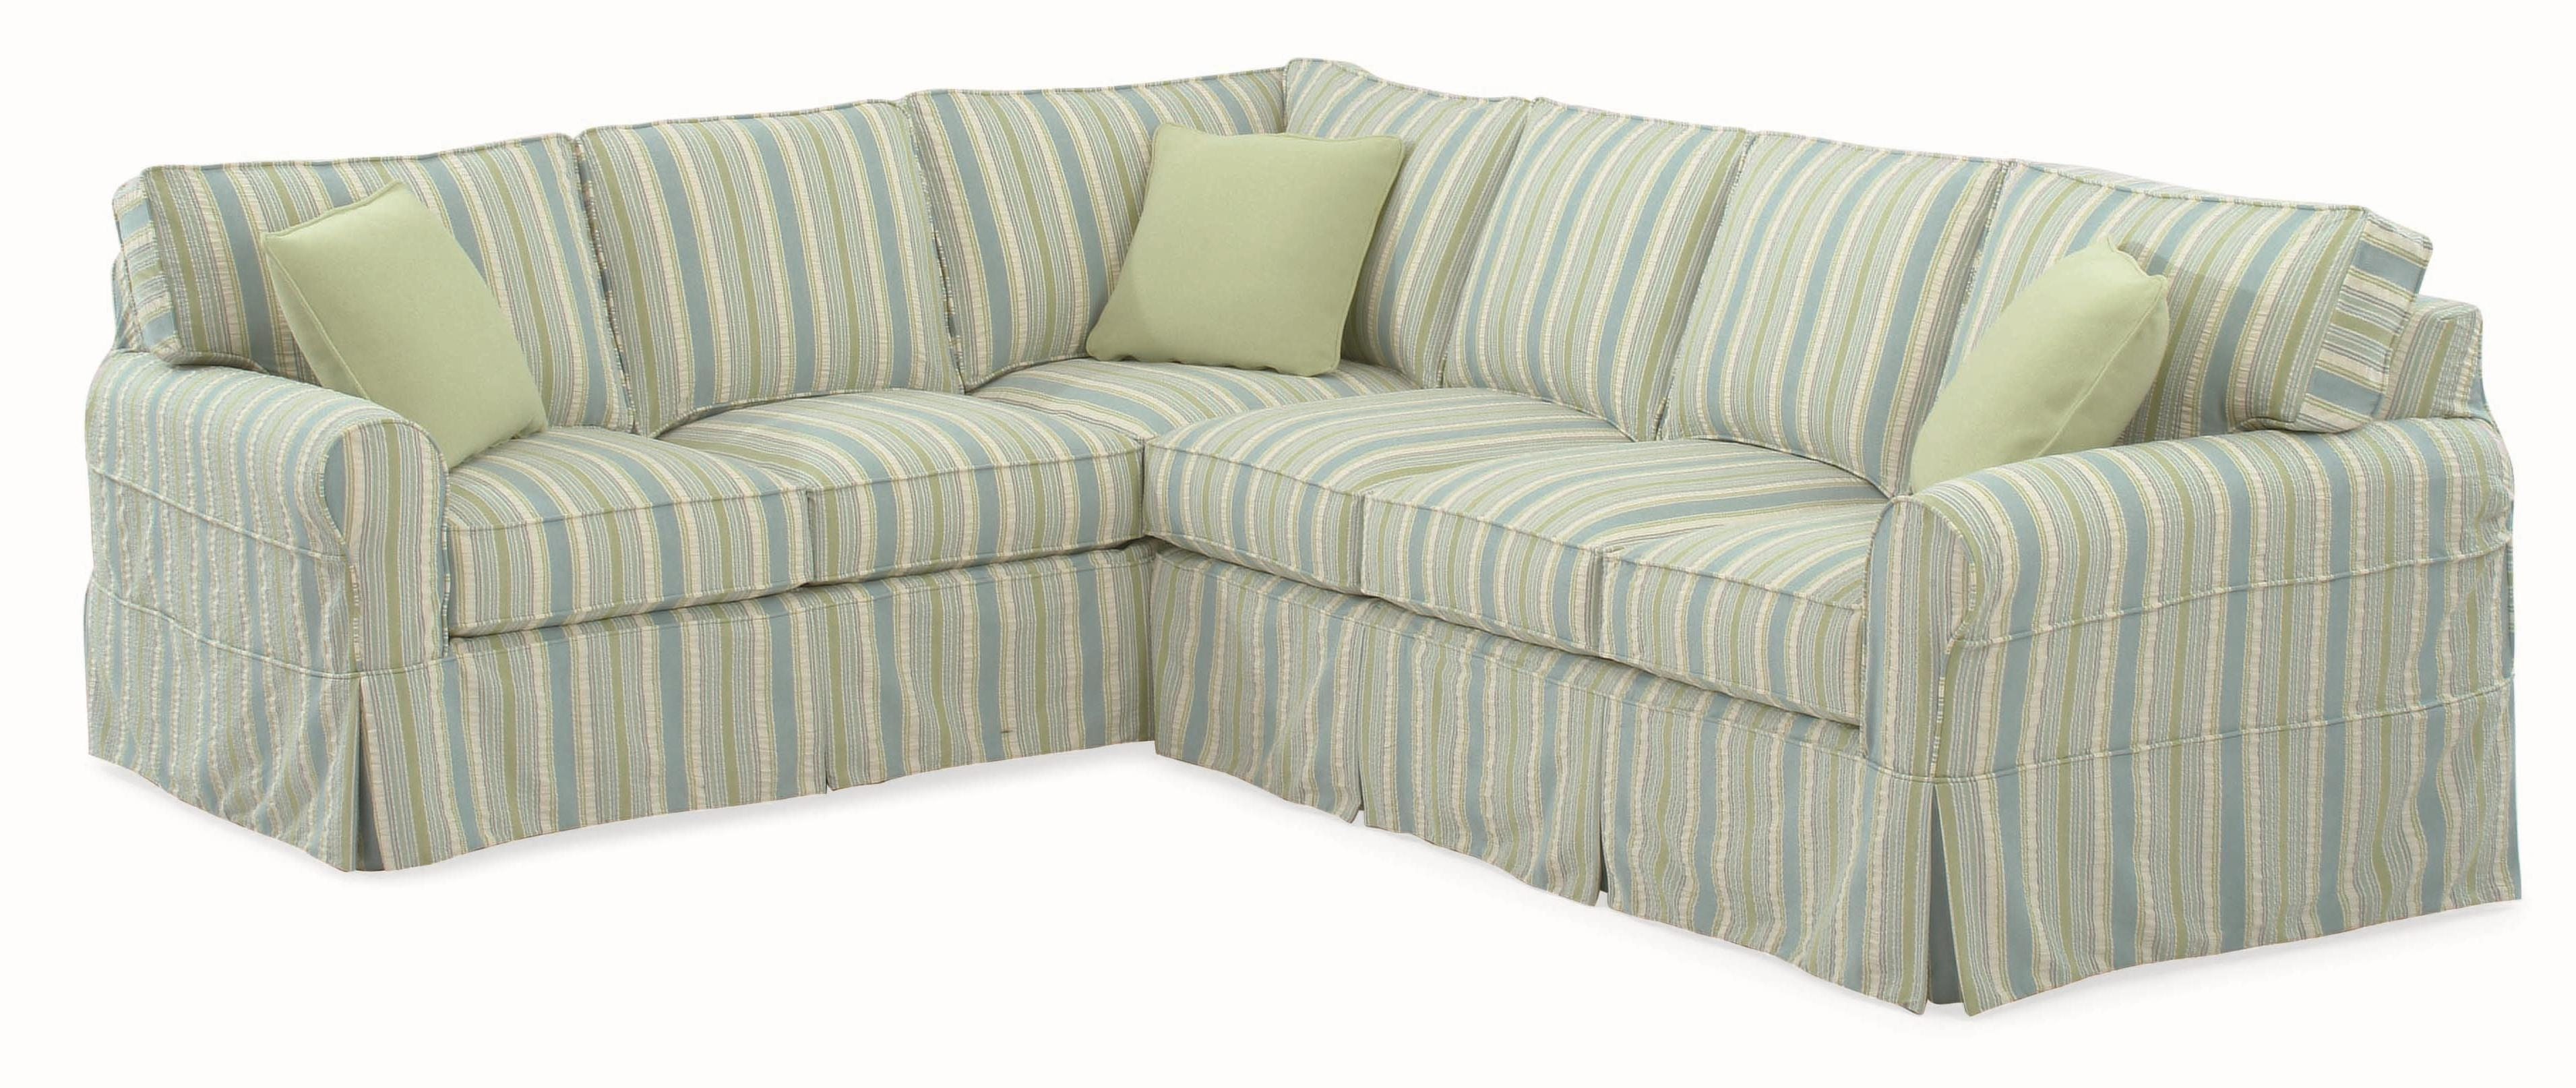 Furniture: Chaise Lounge Slipcover Indoor | Walmart Couch Covers Inside Chaise Sectional Slipcover (View 12 of 15)